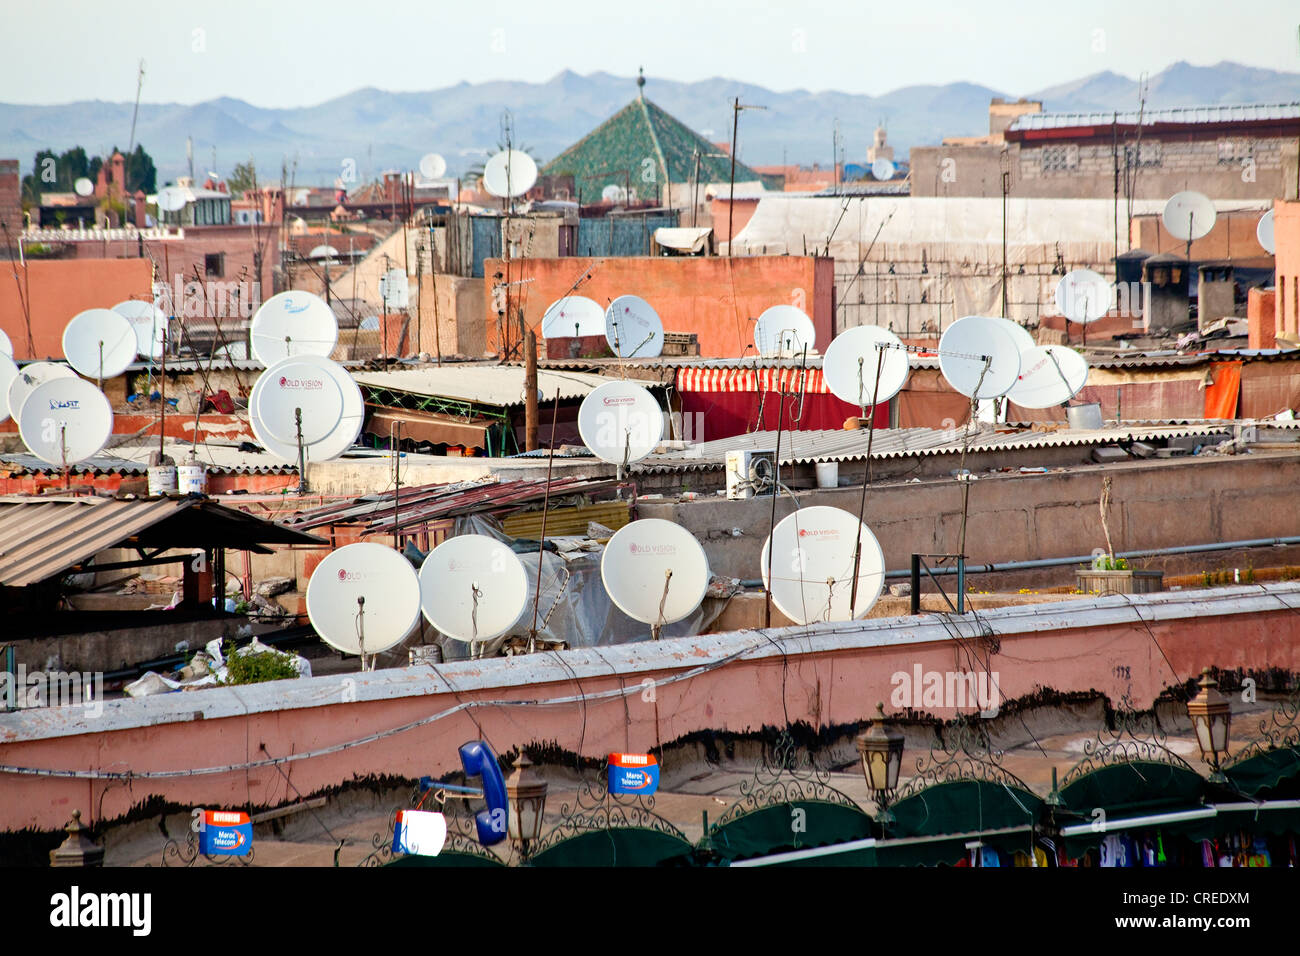 Satellite dishes and aerials on the roofs of buildings in the medina or old town of Marrakech, Morocco, Africa - Stock Image